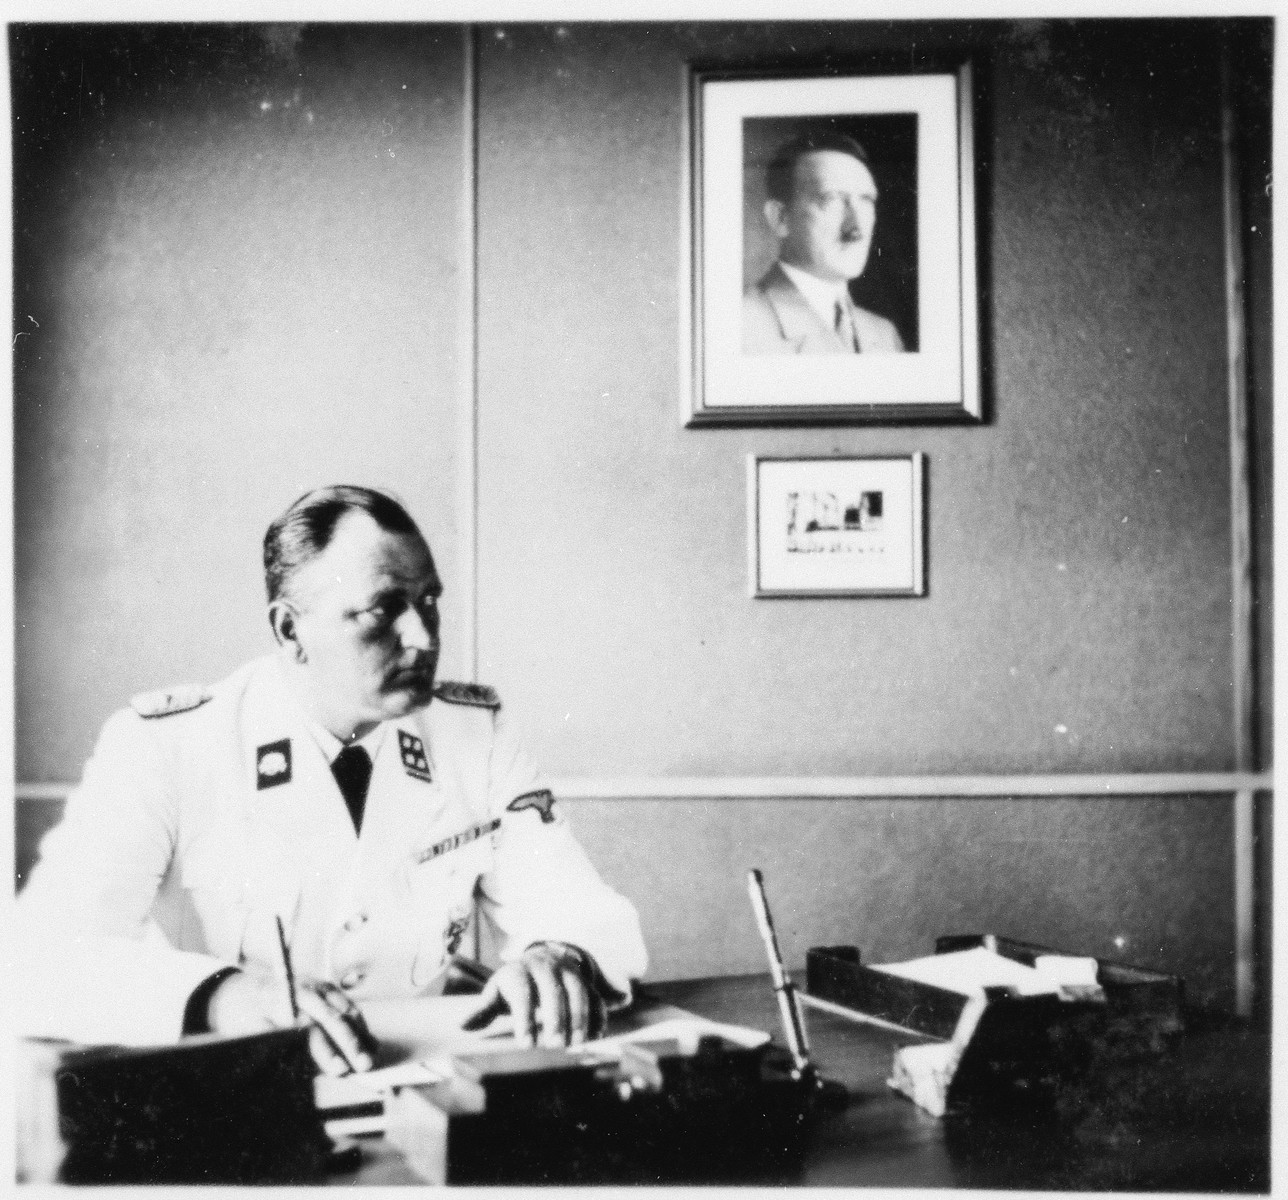 The commander of Gross-Rosen, SS-Obersturmbannfuehrer Arthur Roedl sits at his desk in his office with a photograph of Adolf Hitler hanging on the wall.